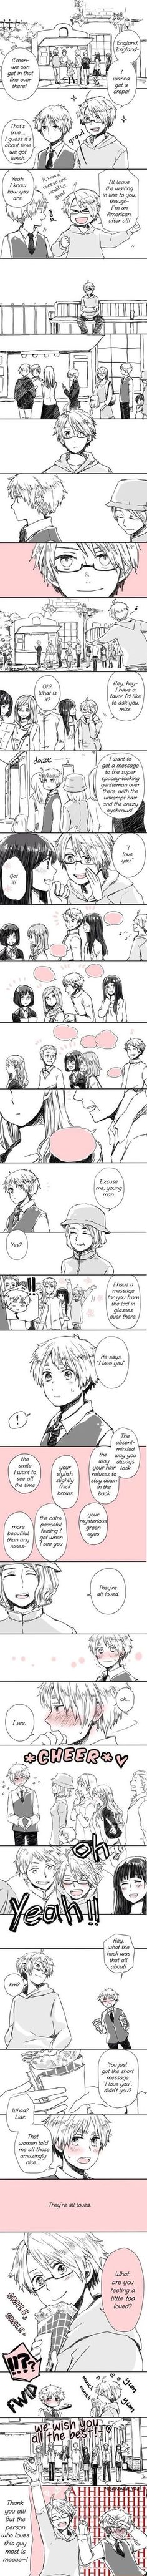 Hetalia ~ USUK America (Alfred) x England (Arthur) I just can't with the cuteness right now >3< ♥ ♥ ♥